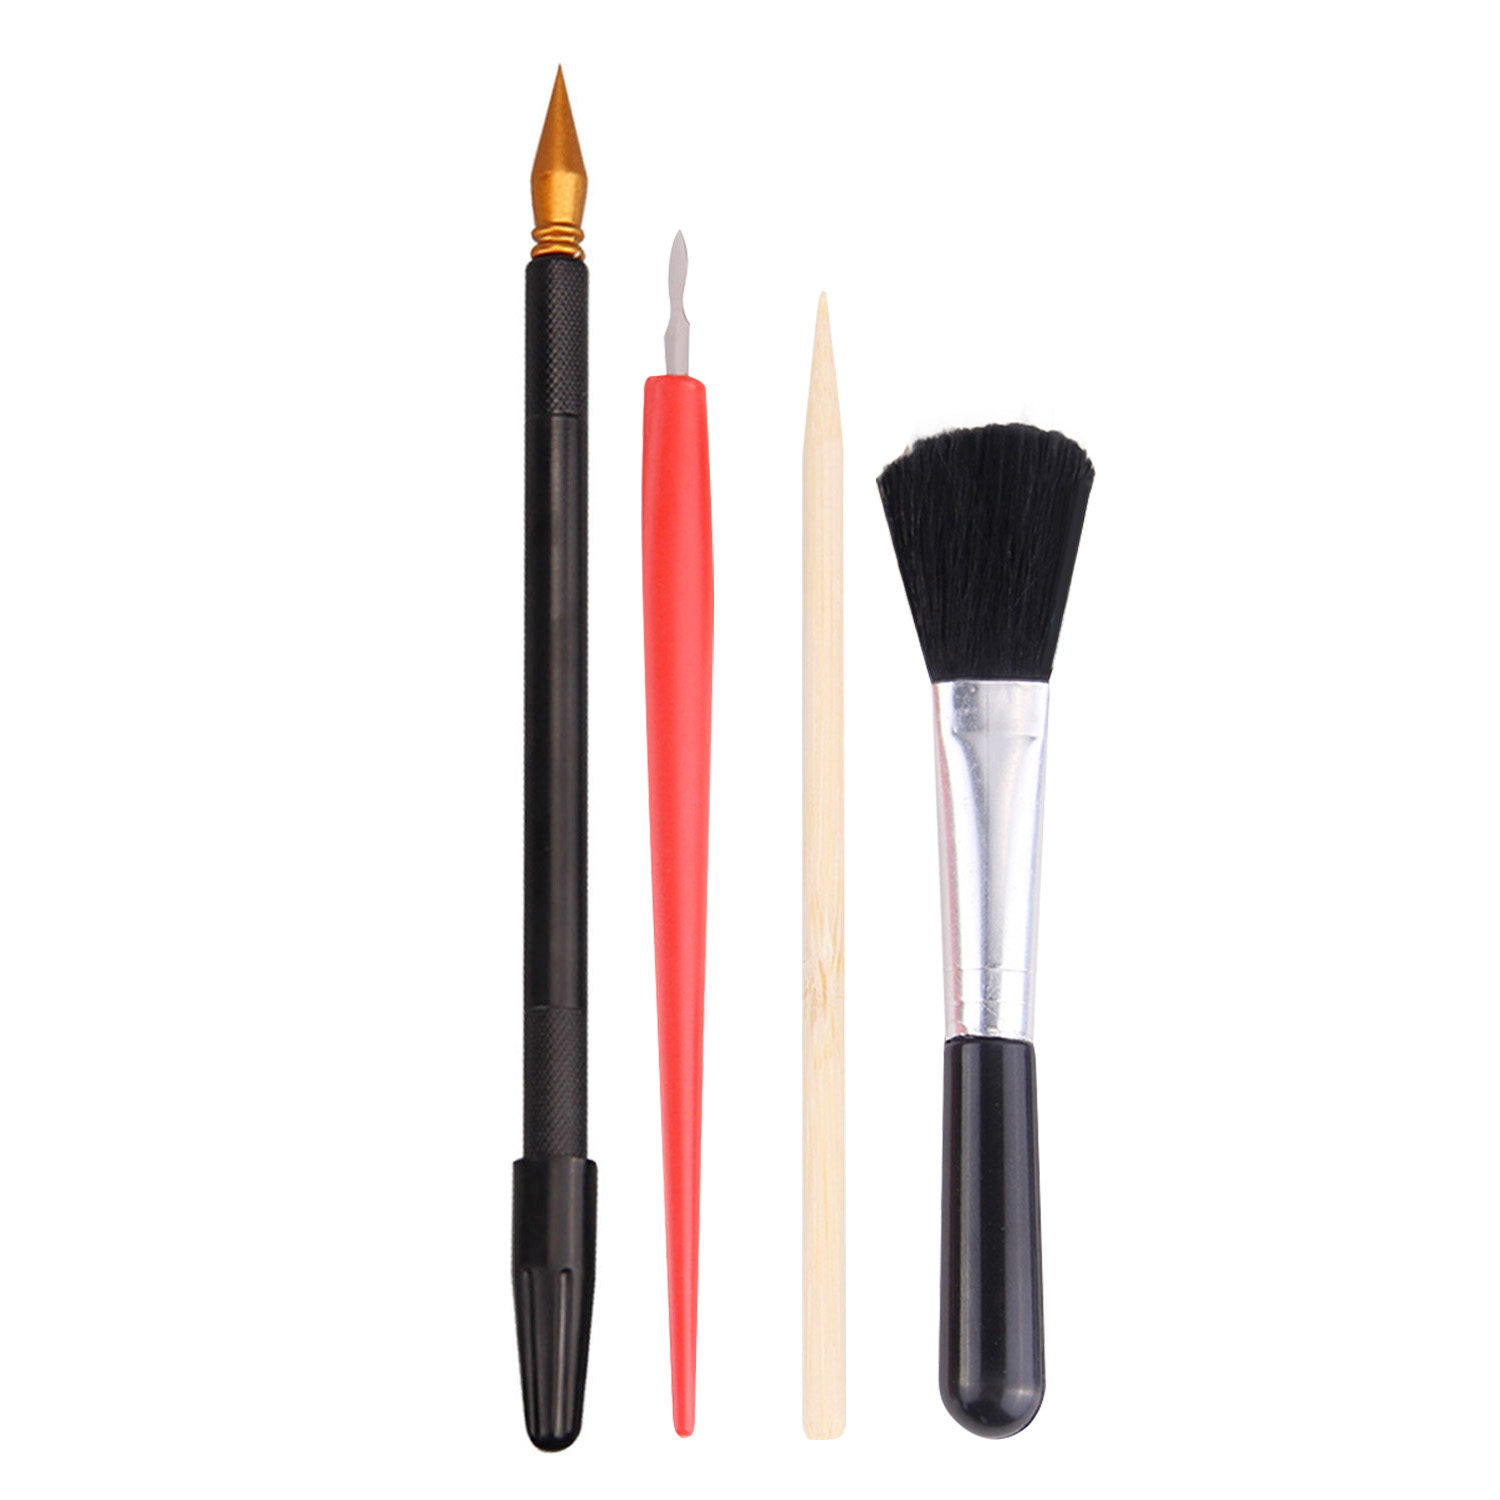 4PCS Painting Drawing Scratch Arts Set With Stick Scraper Pen Black Brush For Scratch Sketch Art Painting Papers Sheets Boards